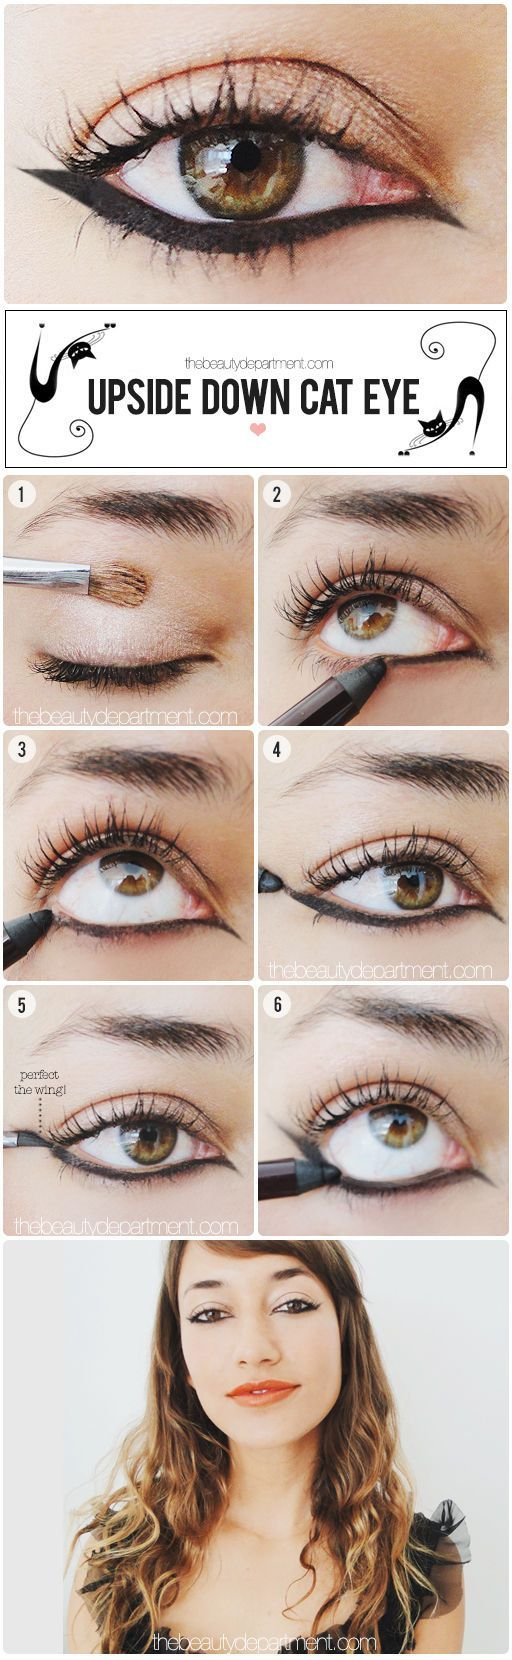 Cat eye tips